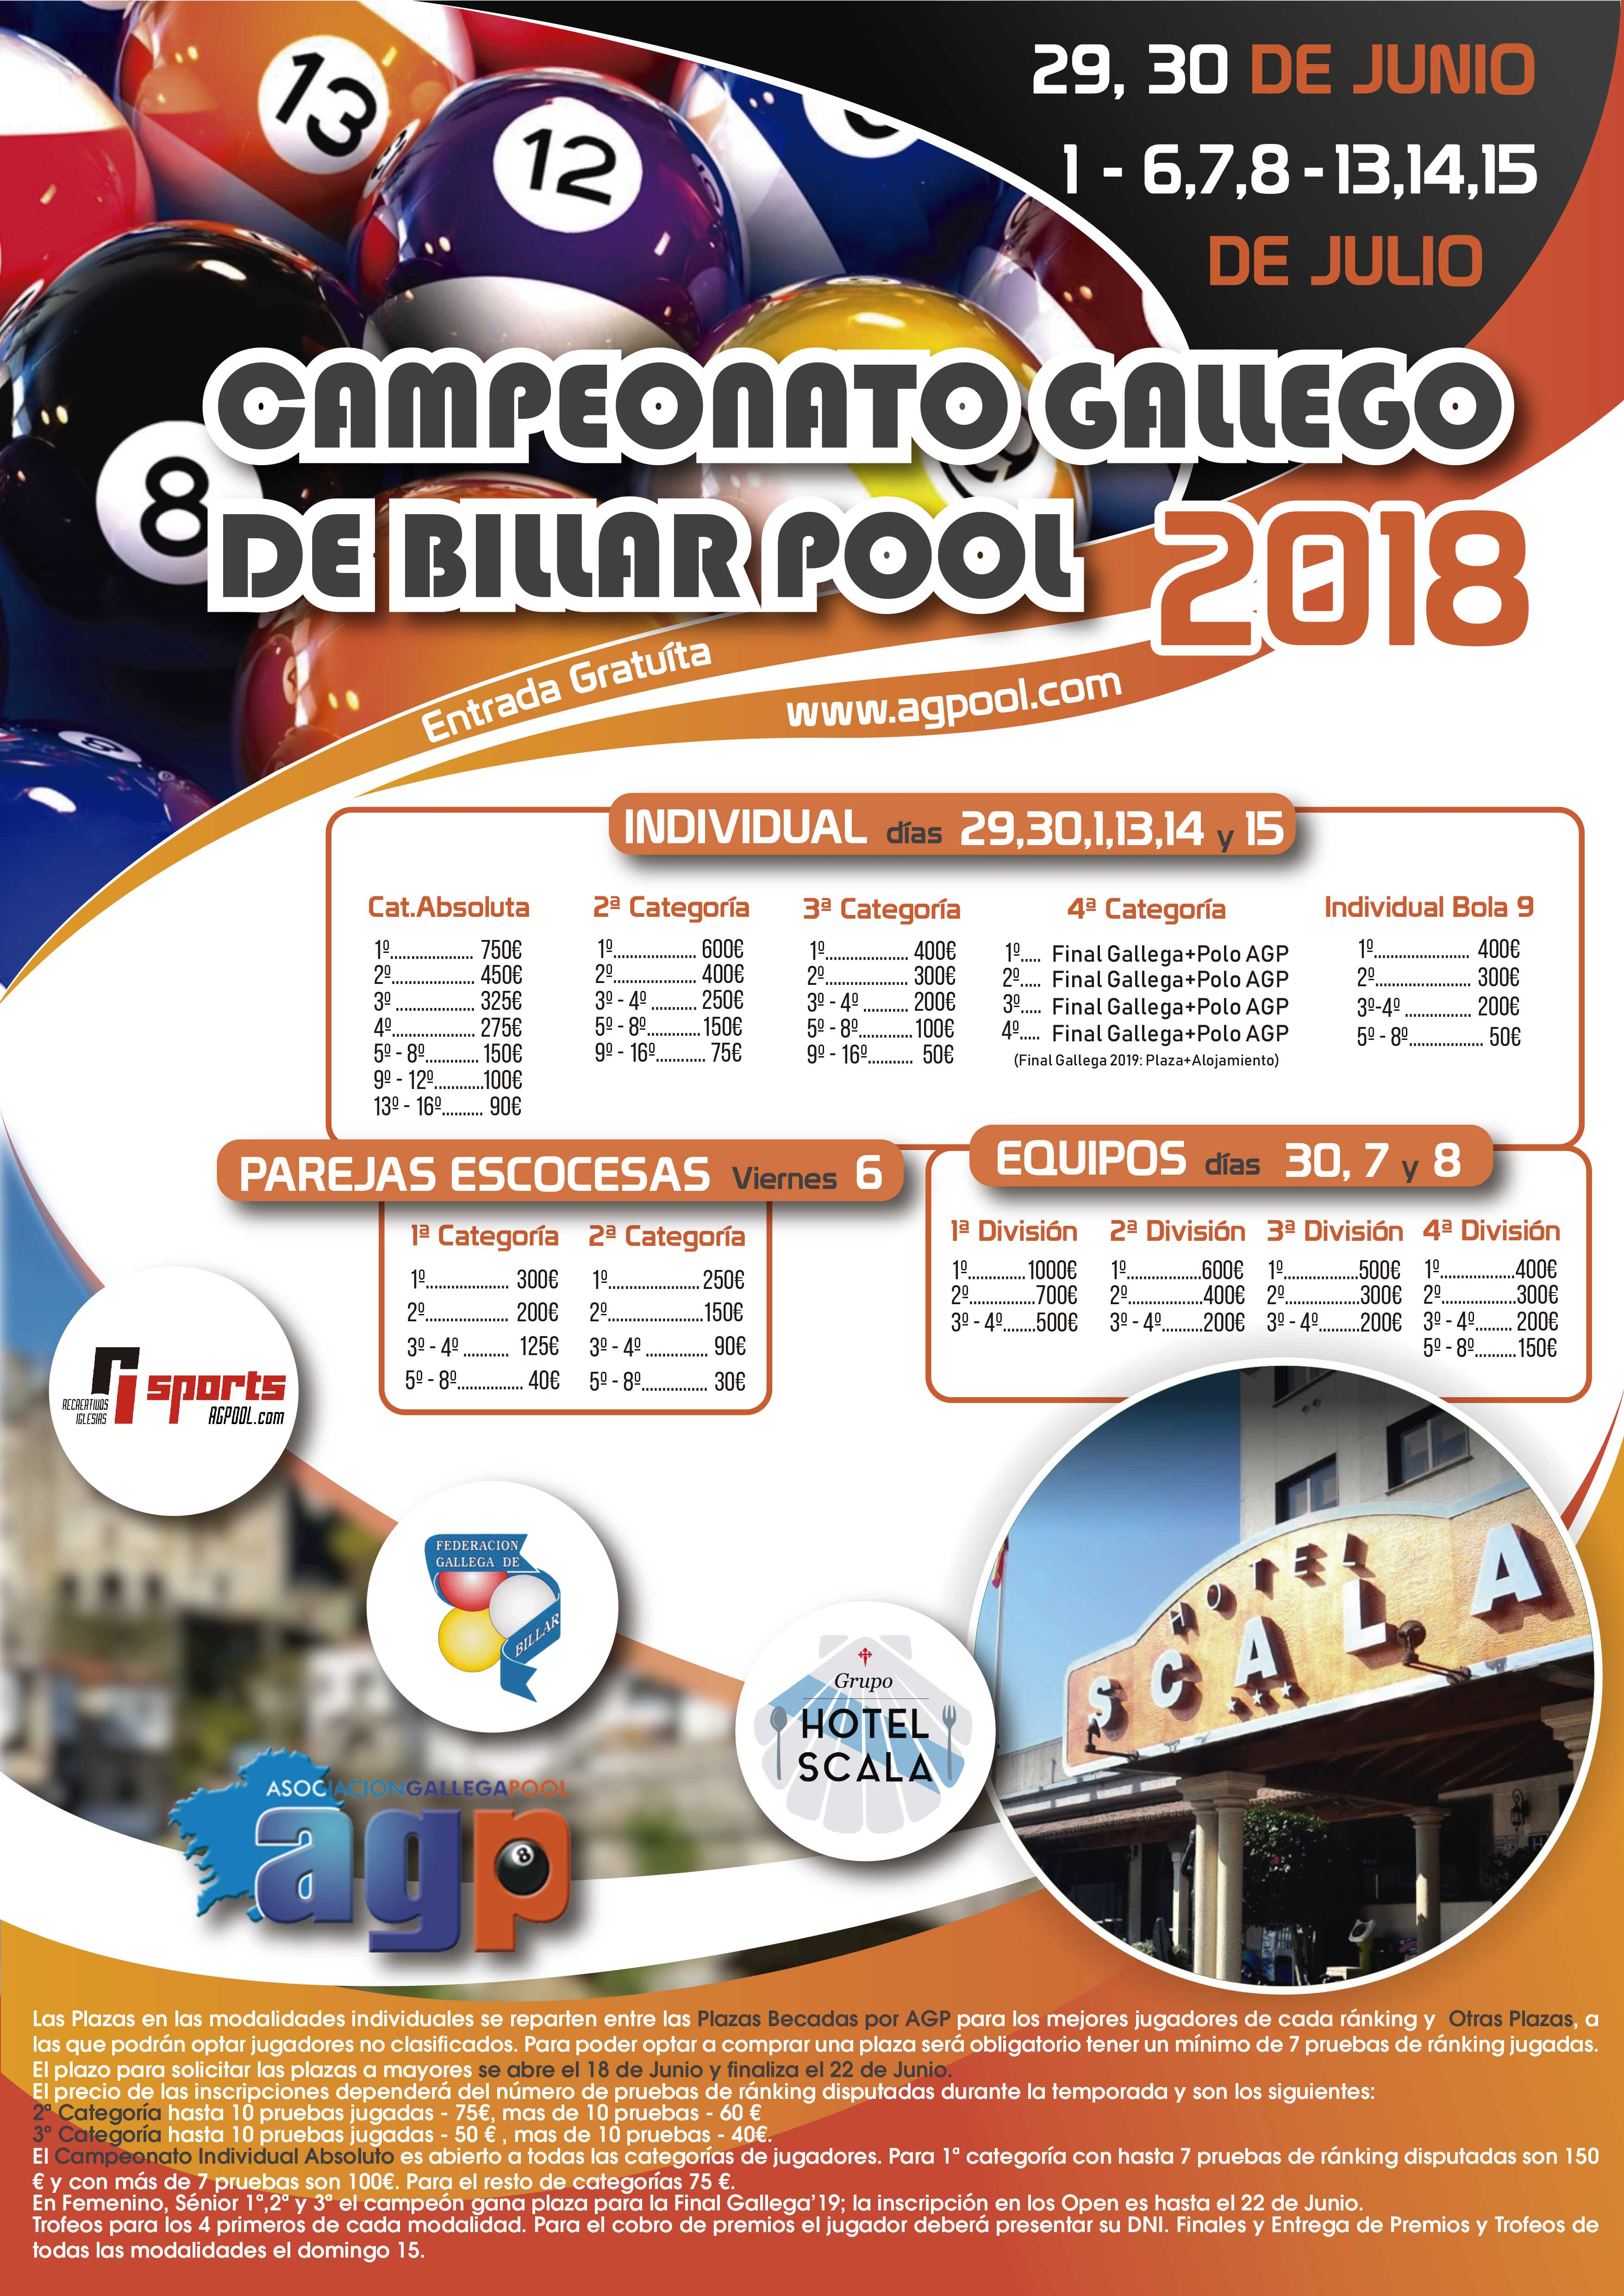 XXVI CAMPEONATO GALLEGO DE BILLAR POOL 2018